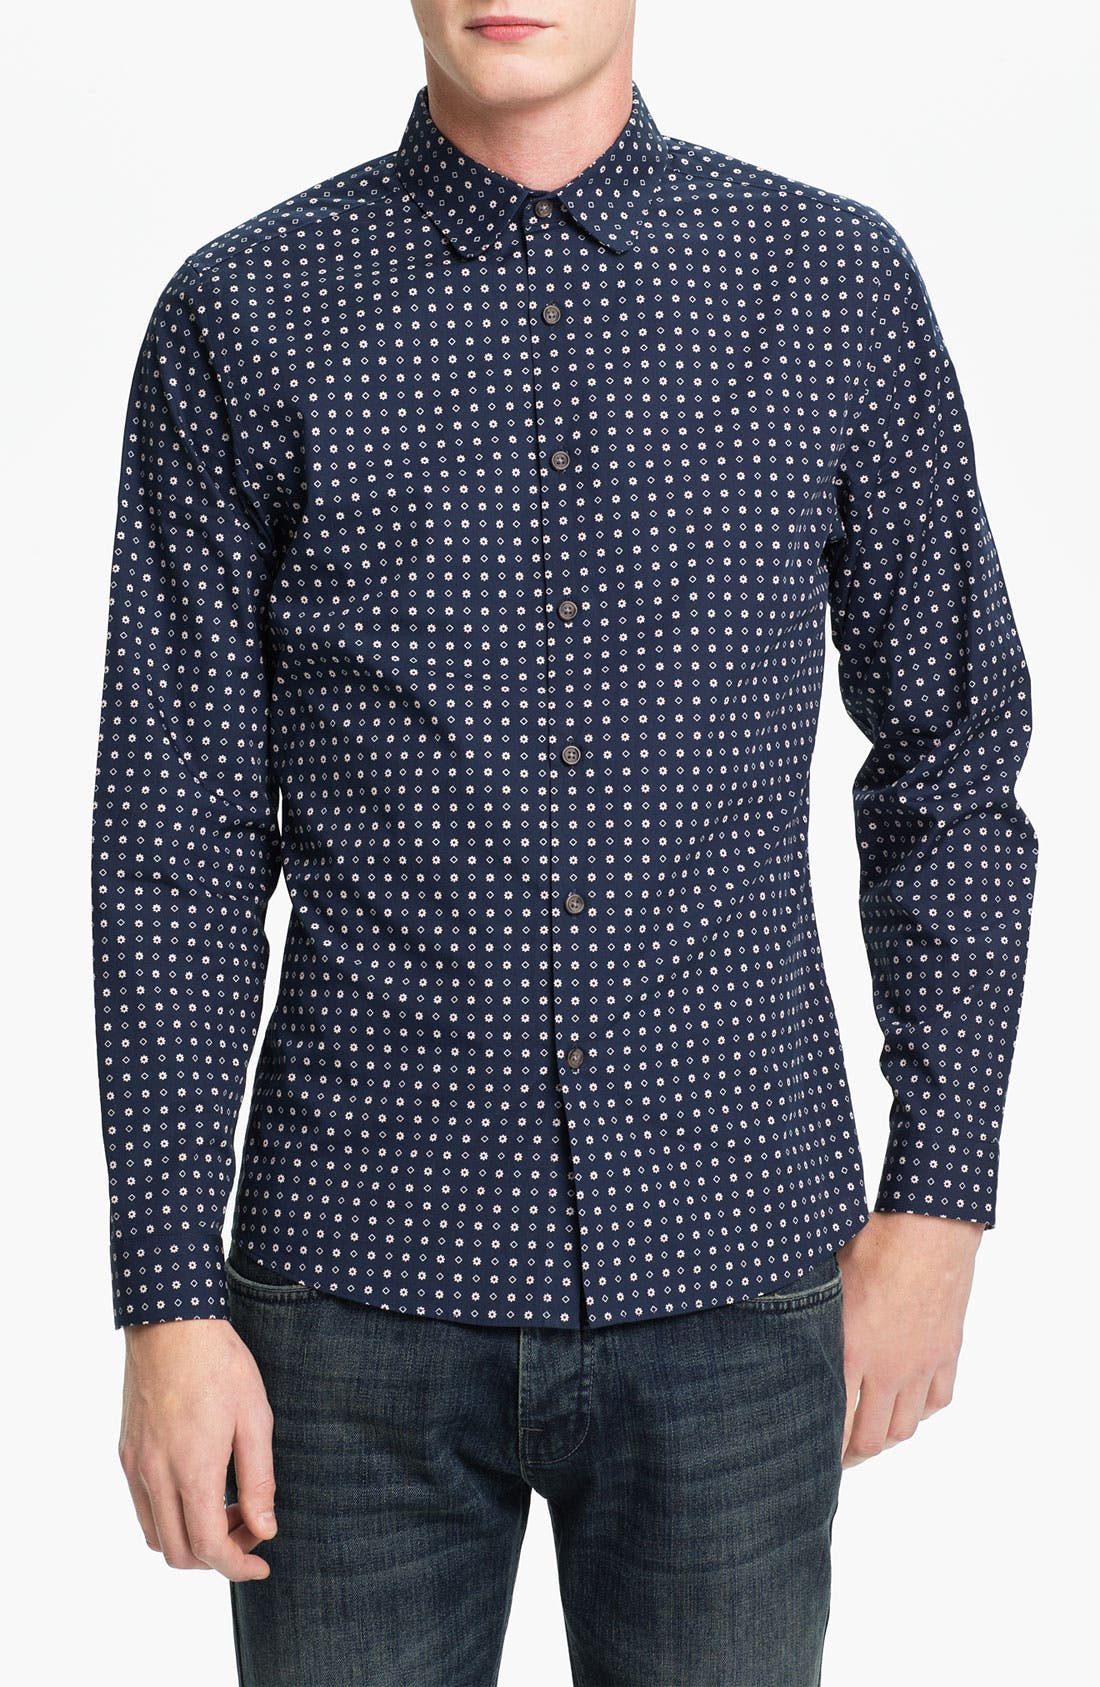 Main Image - Topman Floral Print Slim Fit Dress Shirt